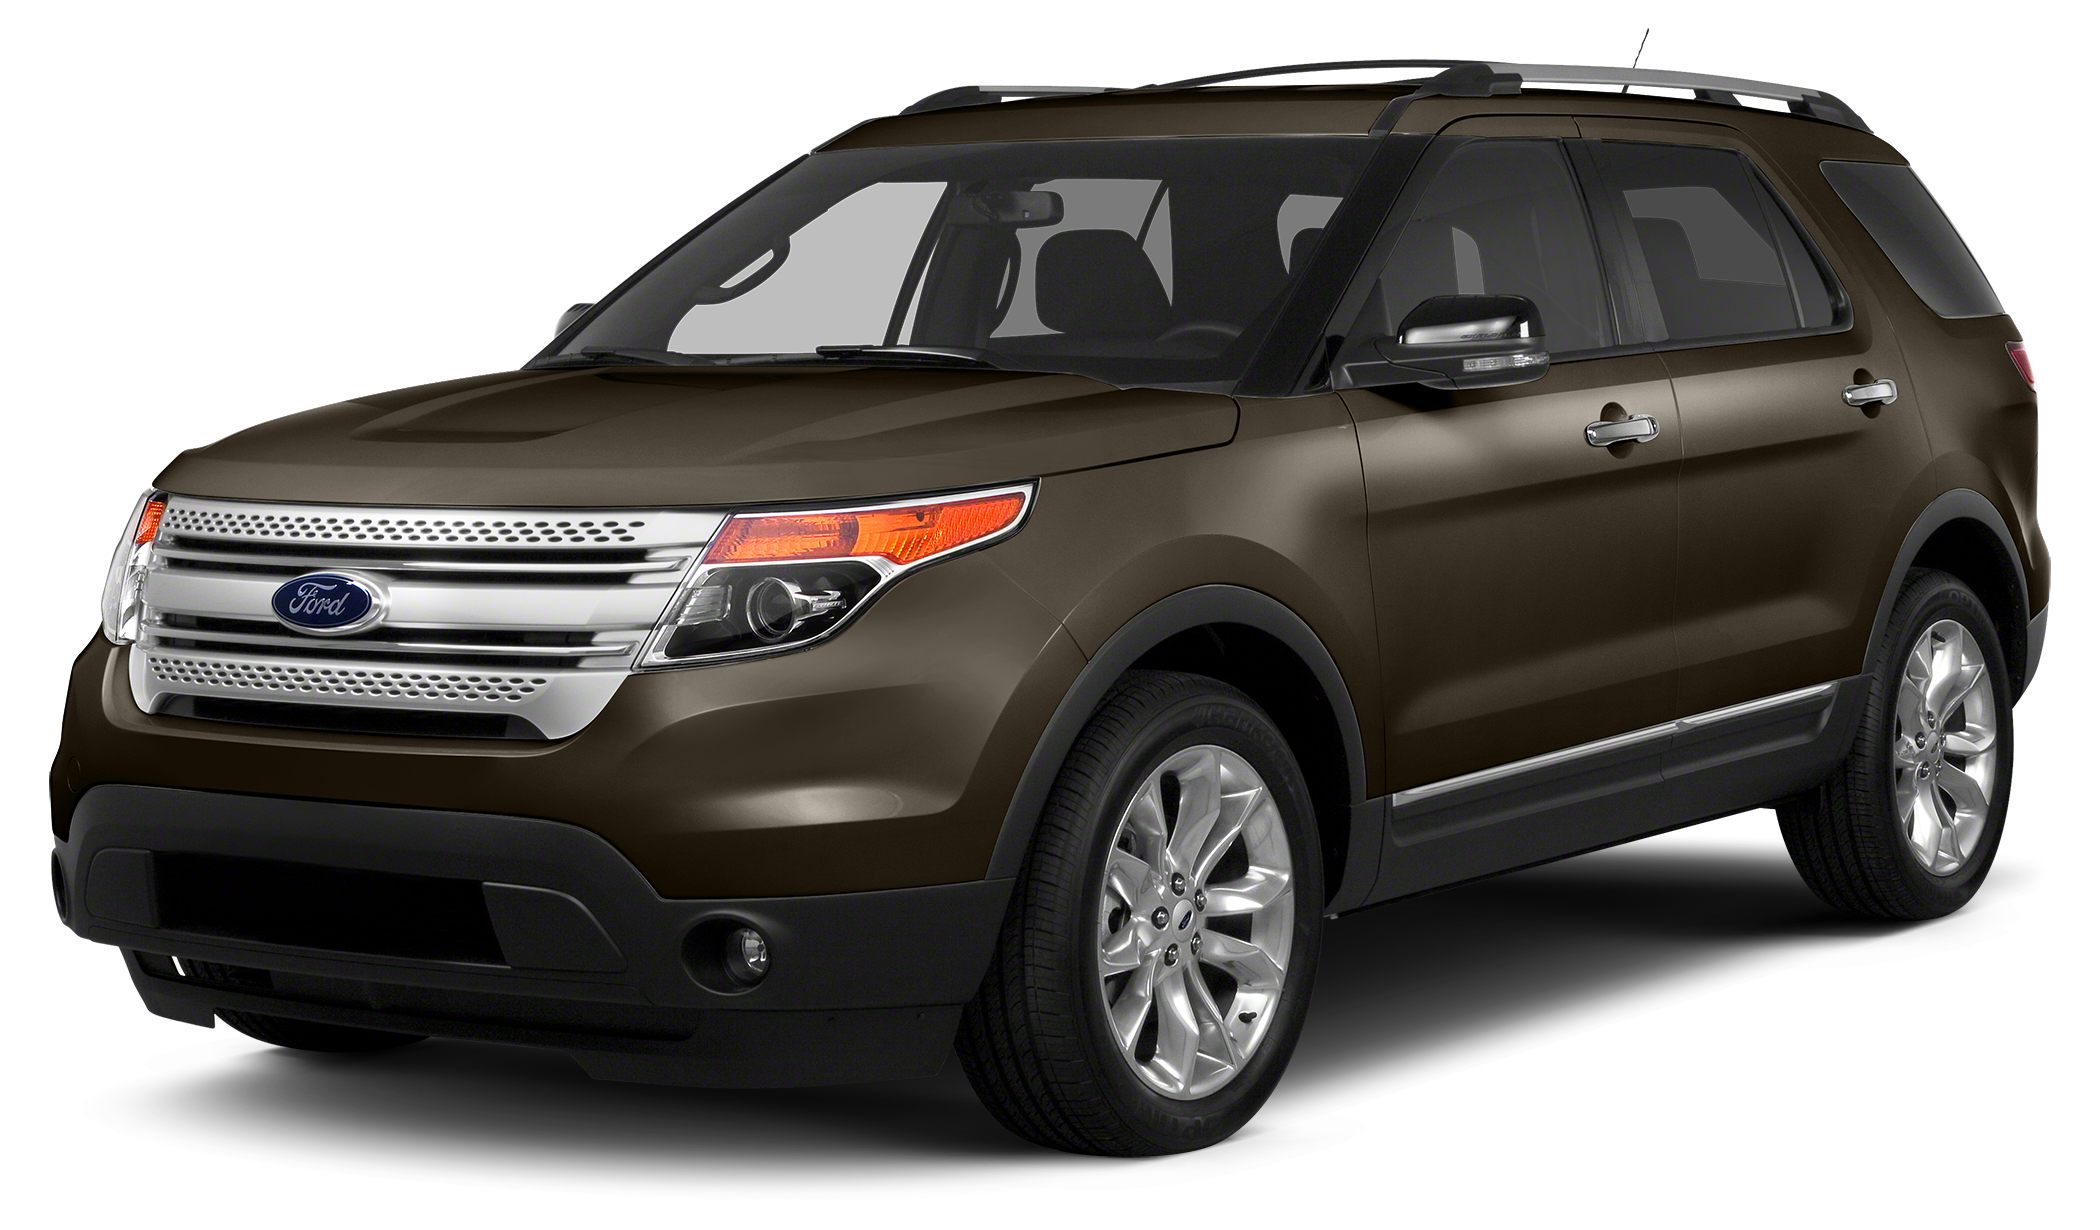 2015 Ford Explorer XLT CARFAX 1-Owner ONLY 3514 Miles FUEL EFFICIENT 24 MPG Hwy17 MPG City Th